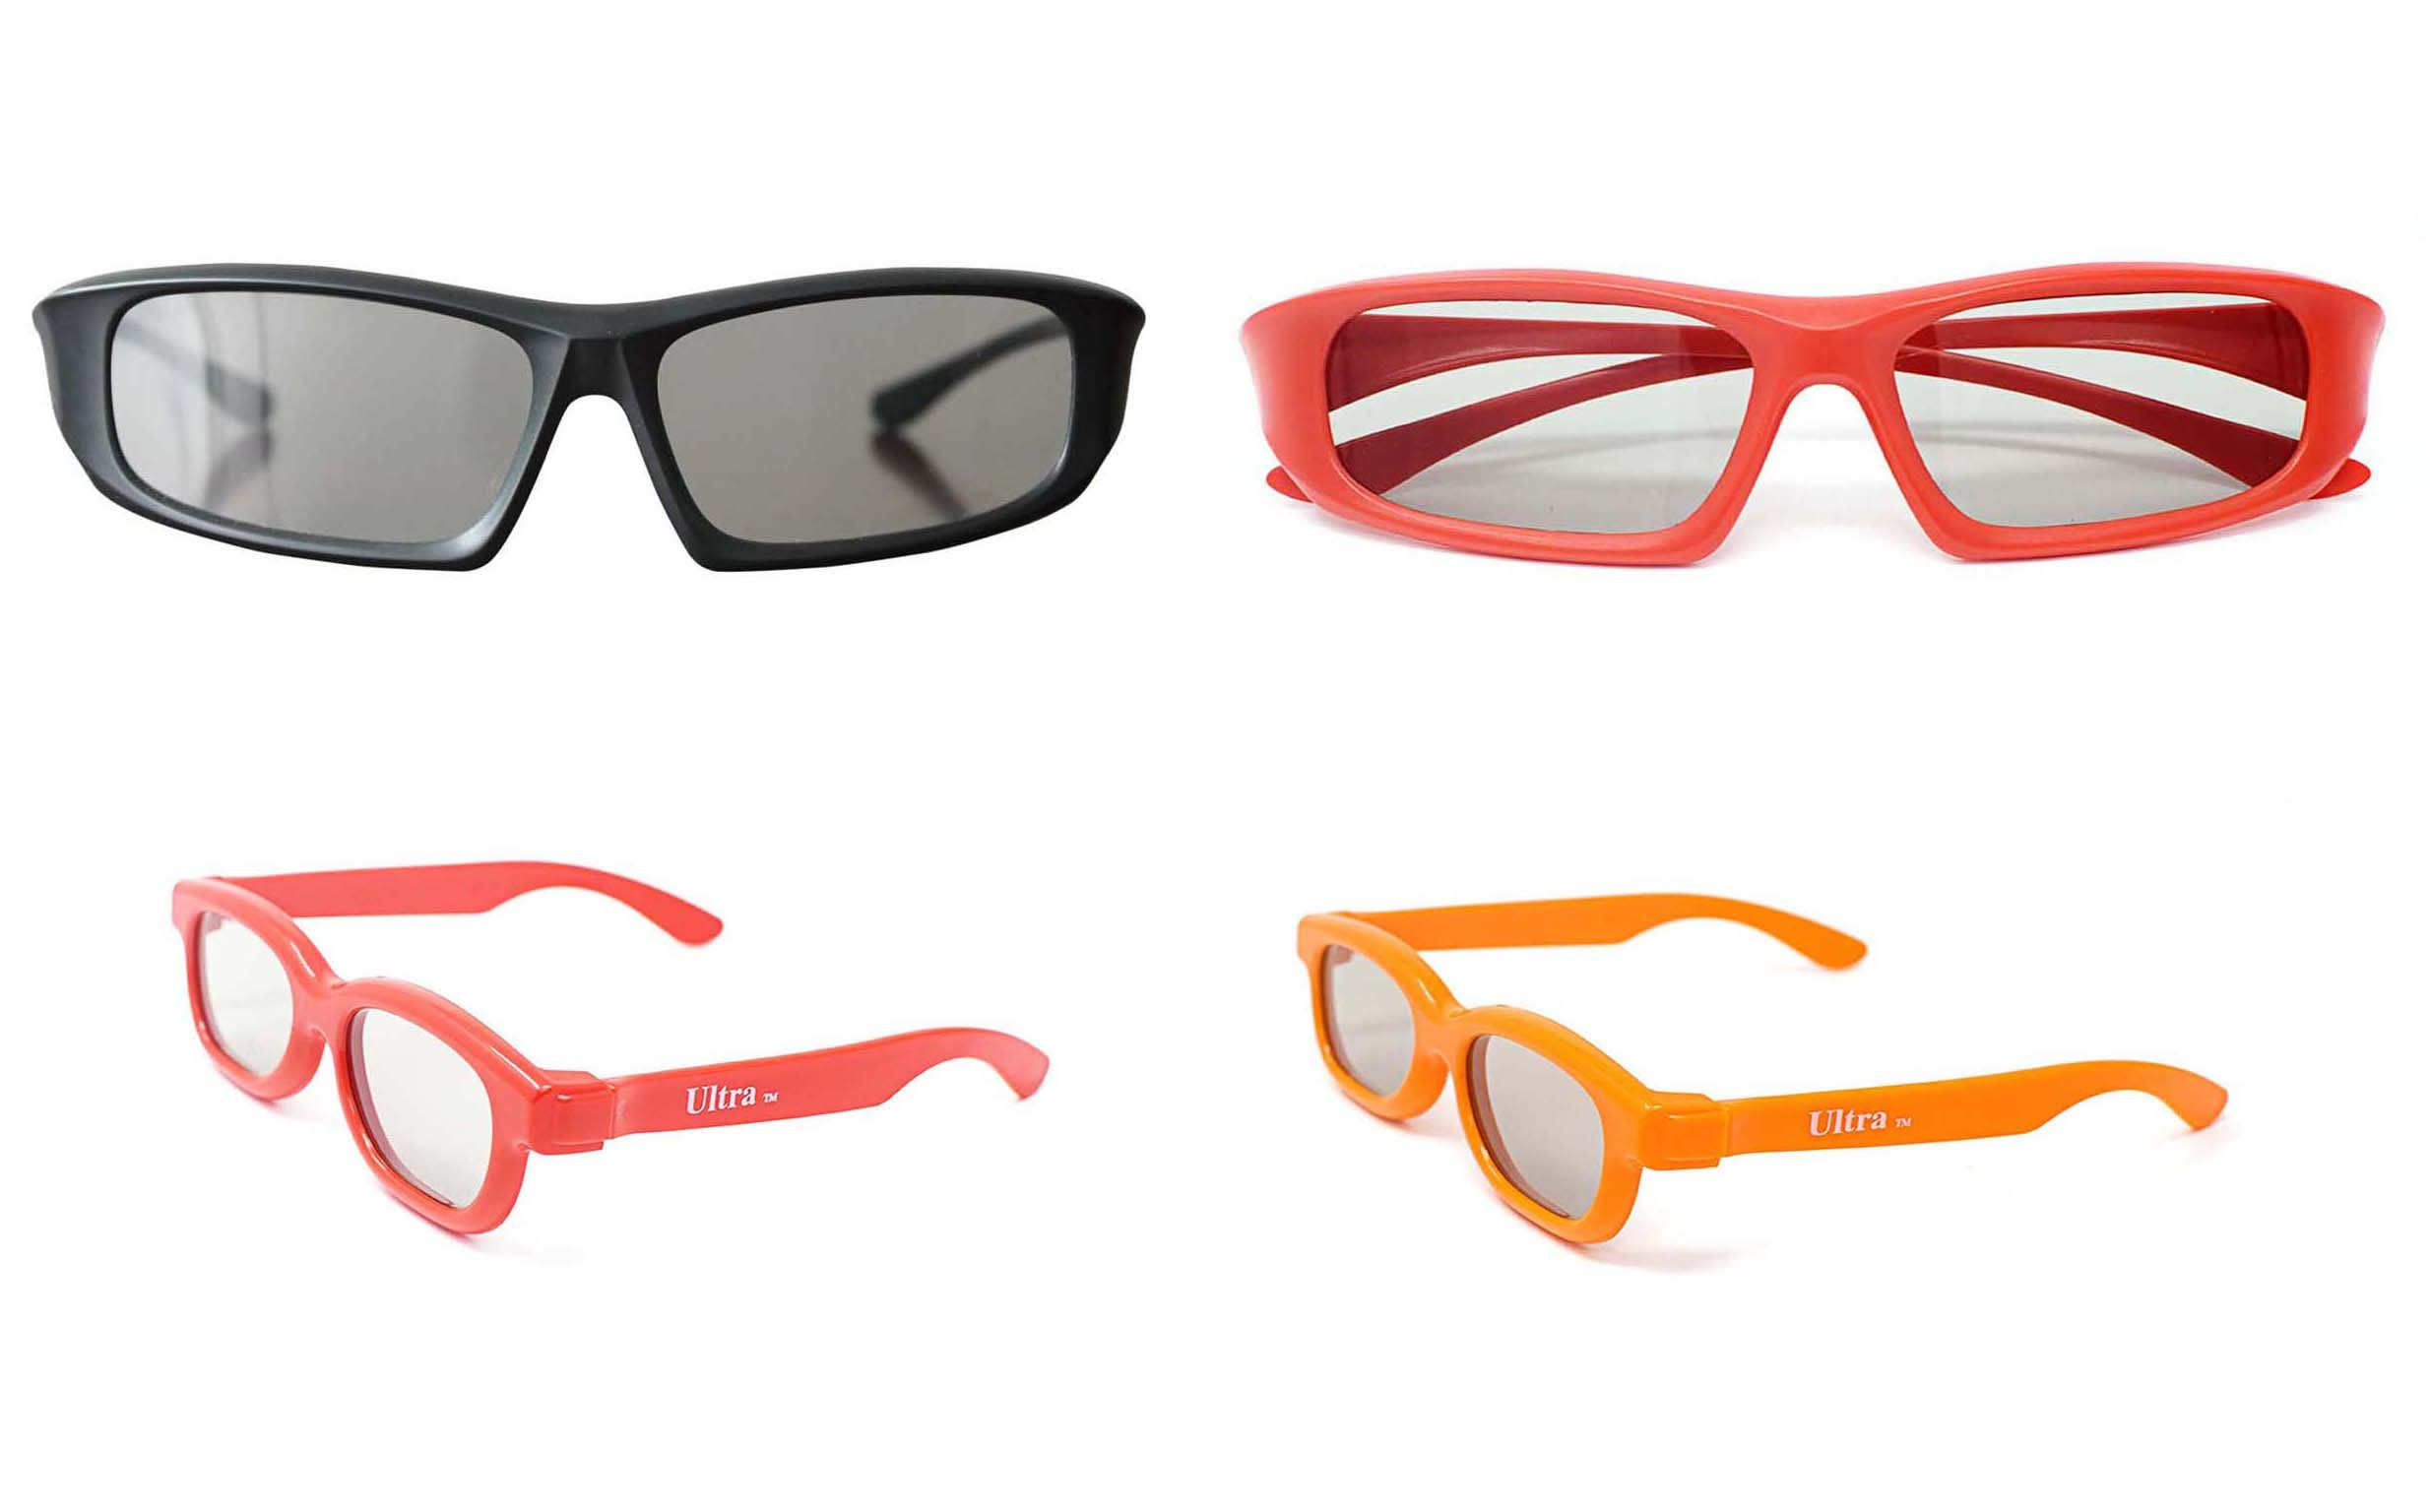 Ultra Family pack of 4 Pairs of Universal Passive 3D Glasses for all TV & cinema 2 Adults red & black & 2 kids in red & orange